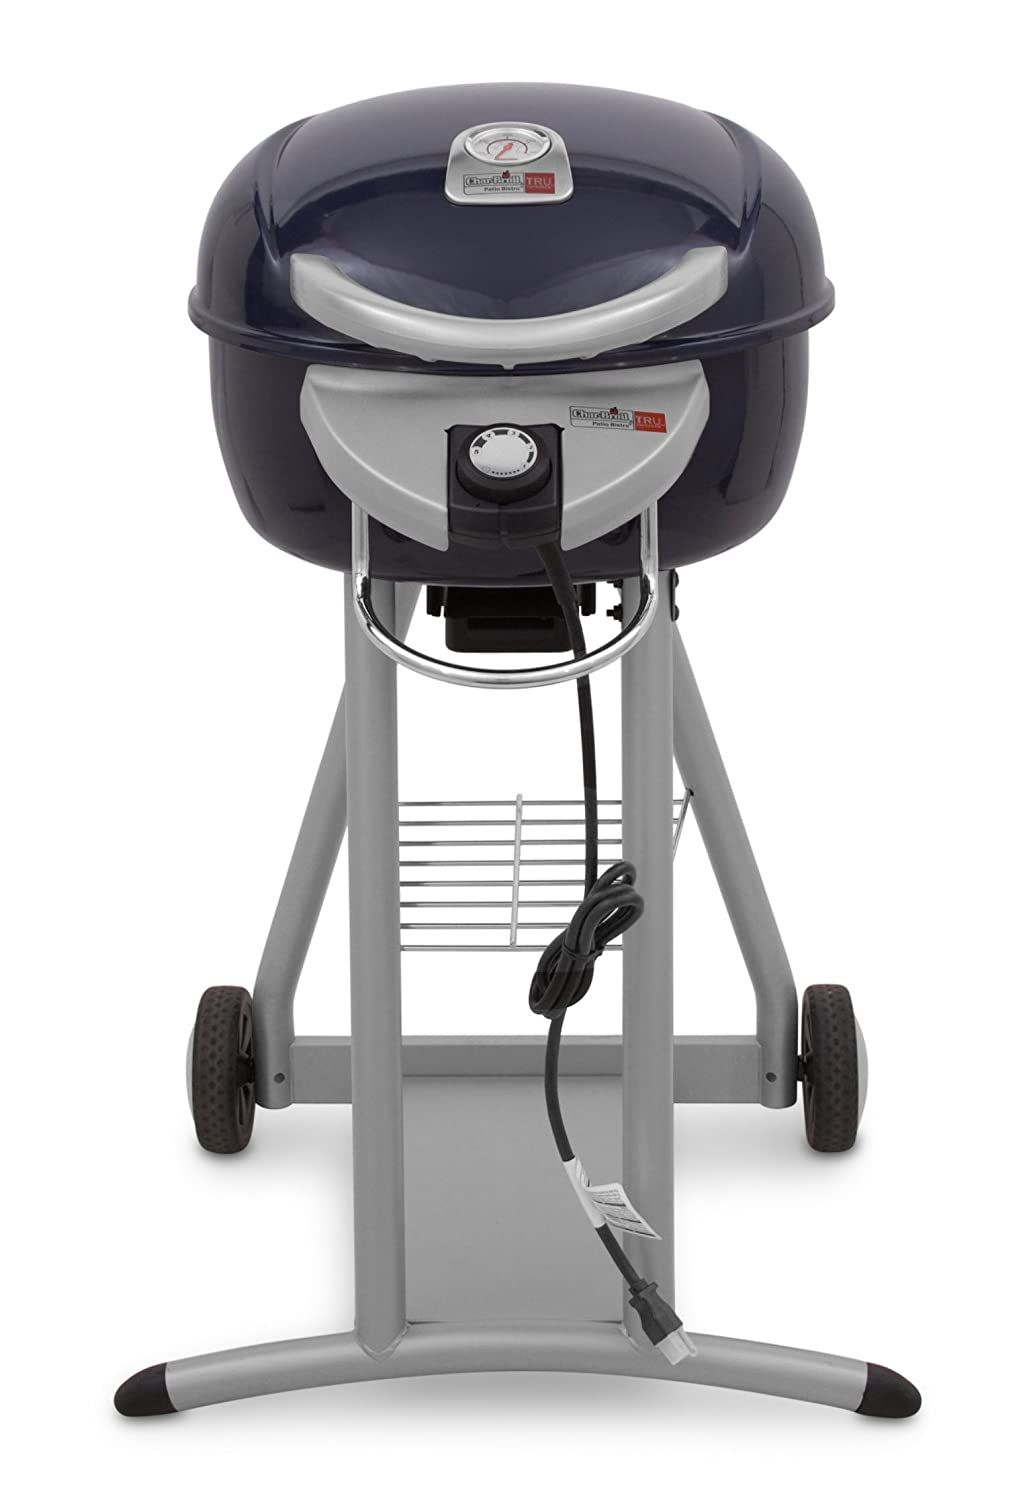 Amazon.com : Char Broil TRU Infrared Patio Bistro Electric Grill, Blue :  Freestanding Grills : Garden U0026 Outdoor